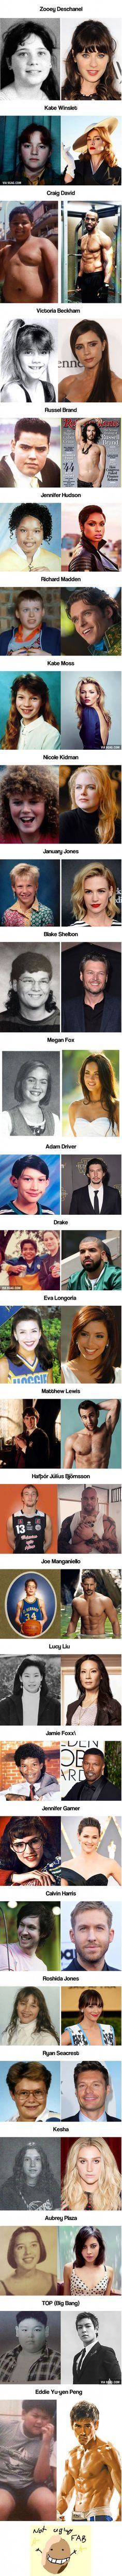 28 Celebrities Who Were Once Ugly Ducklings